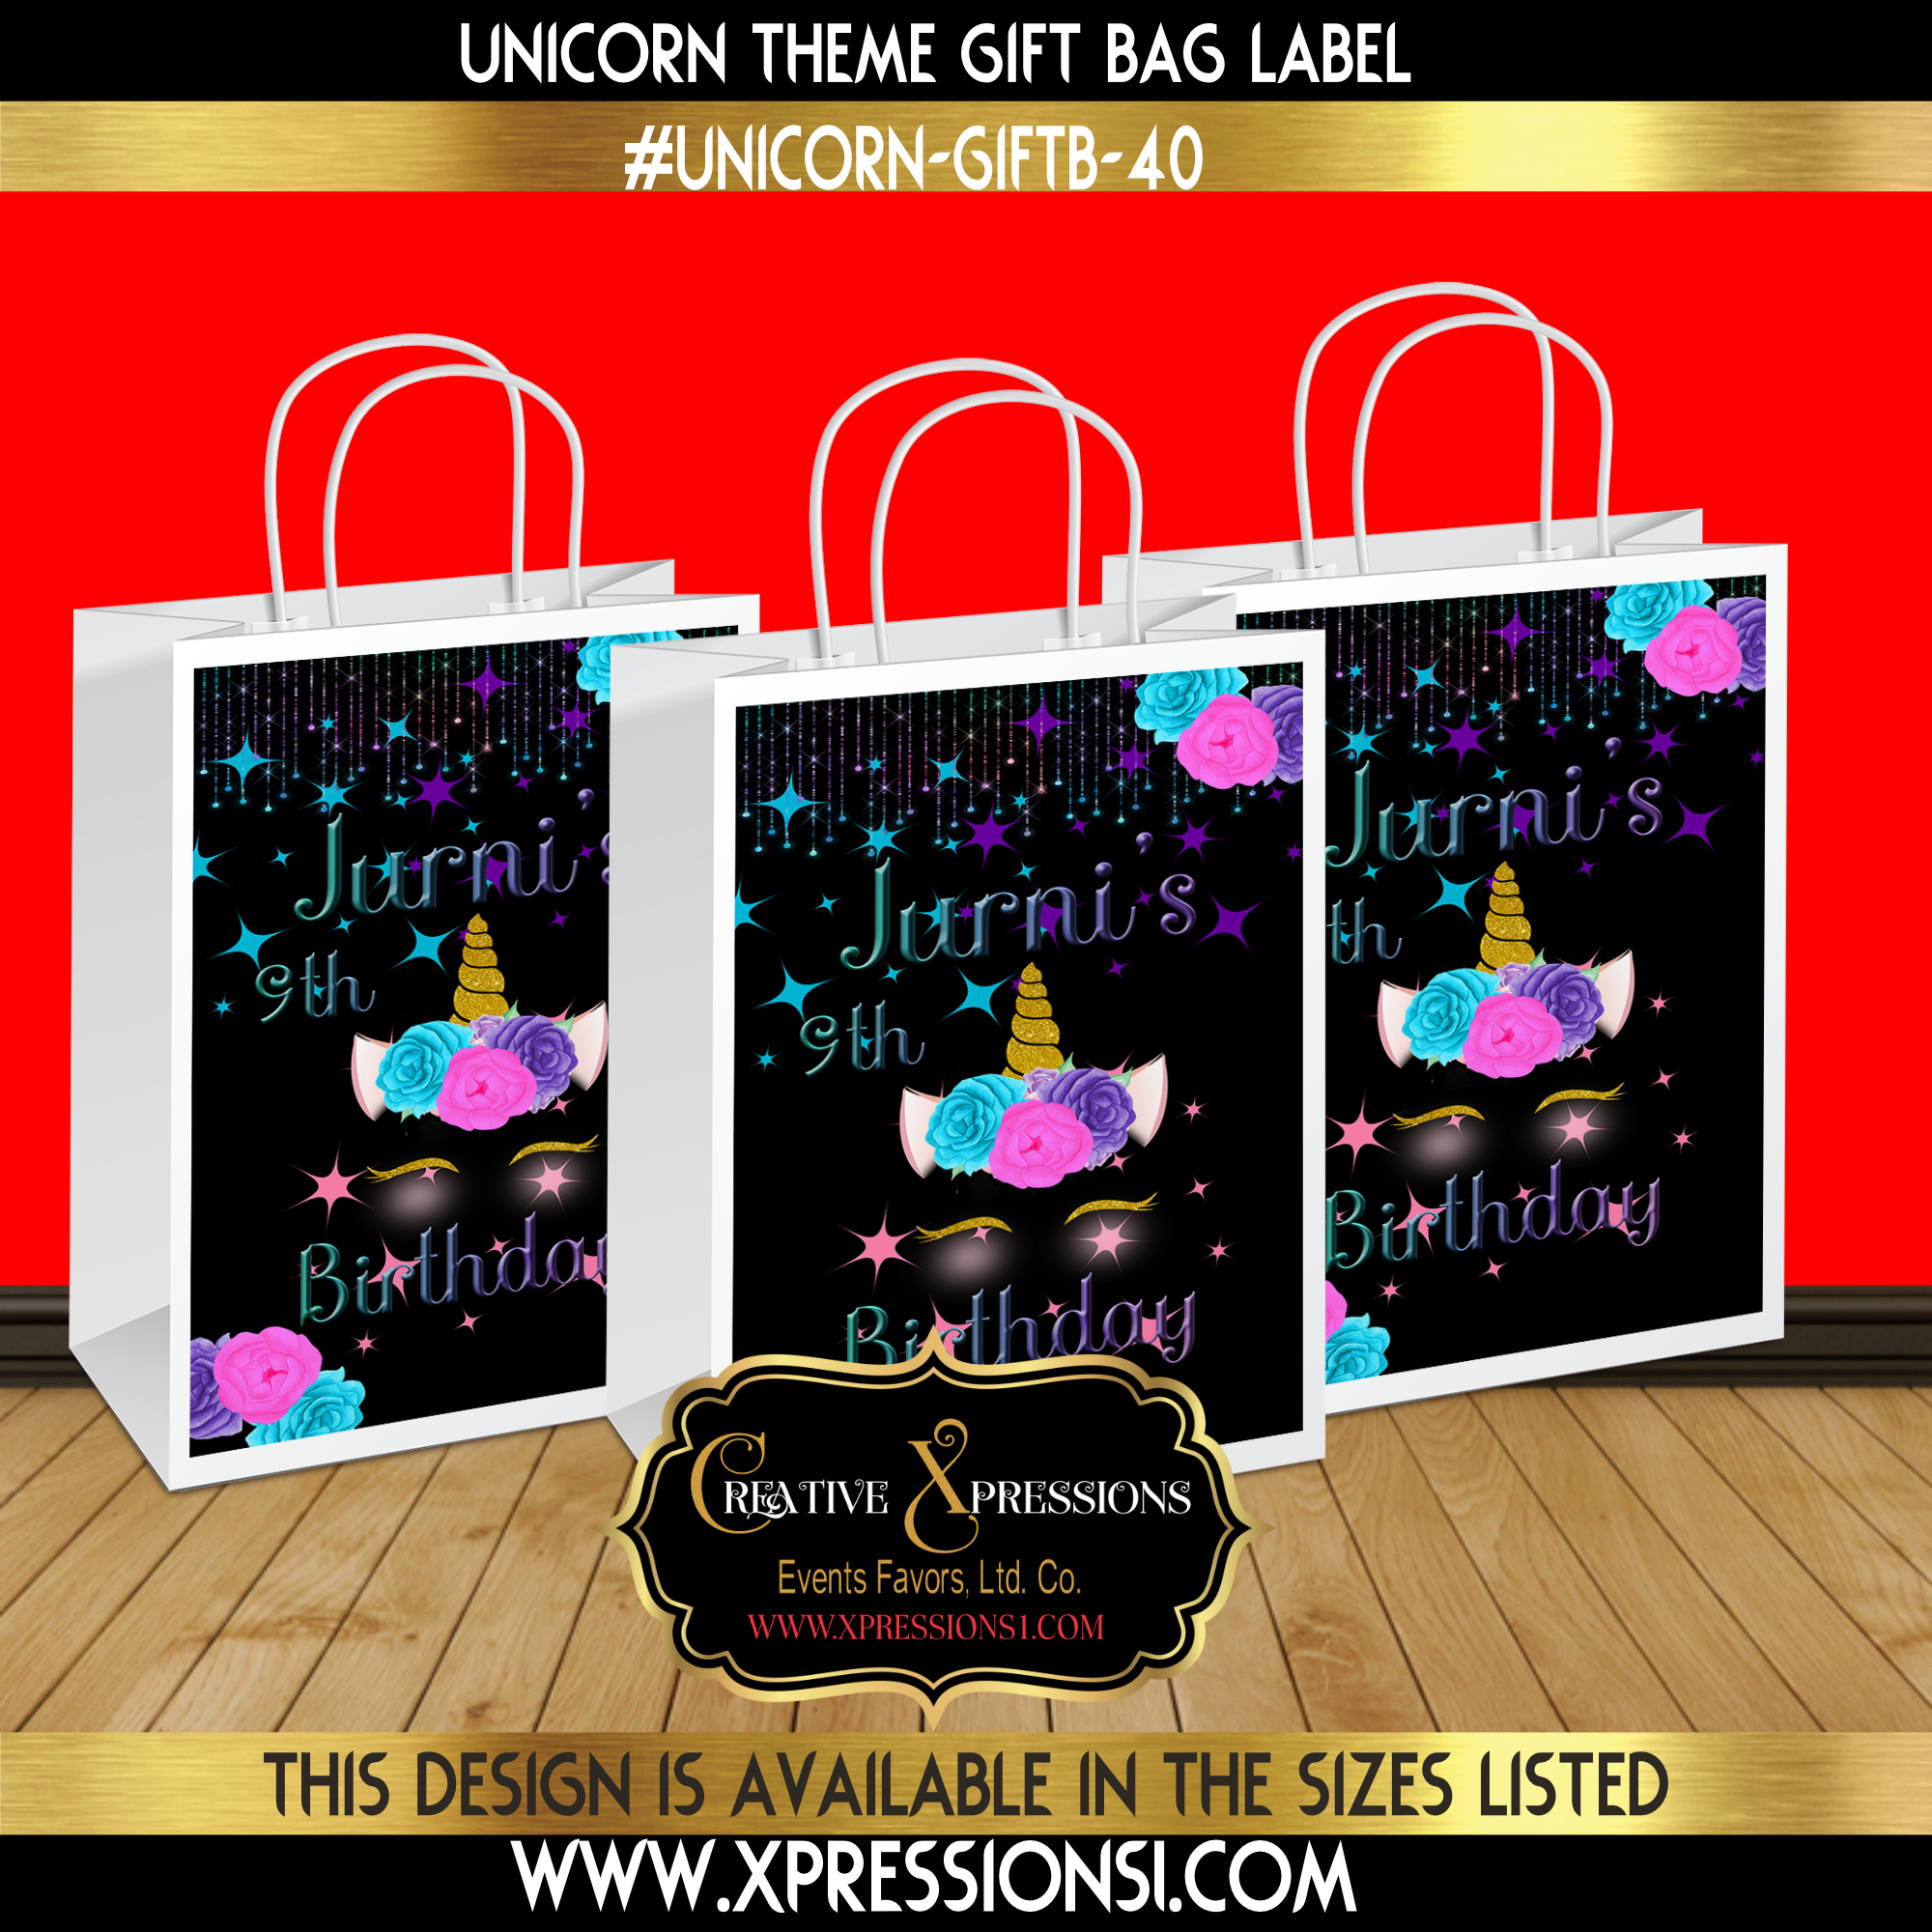 Unicorn Bright Gift Bag